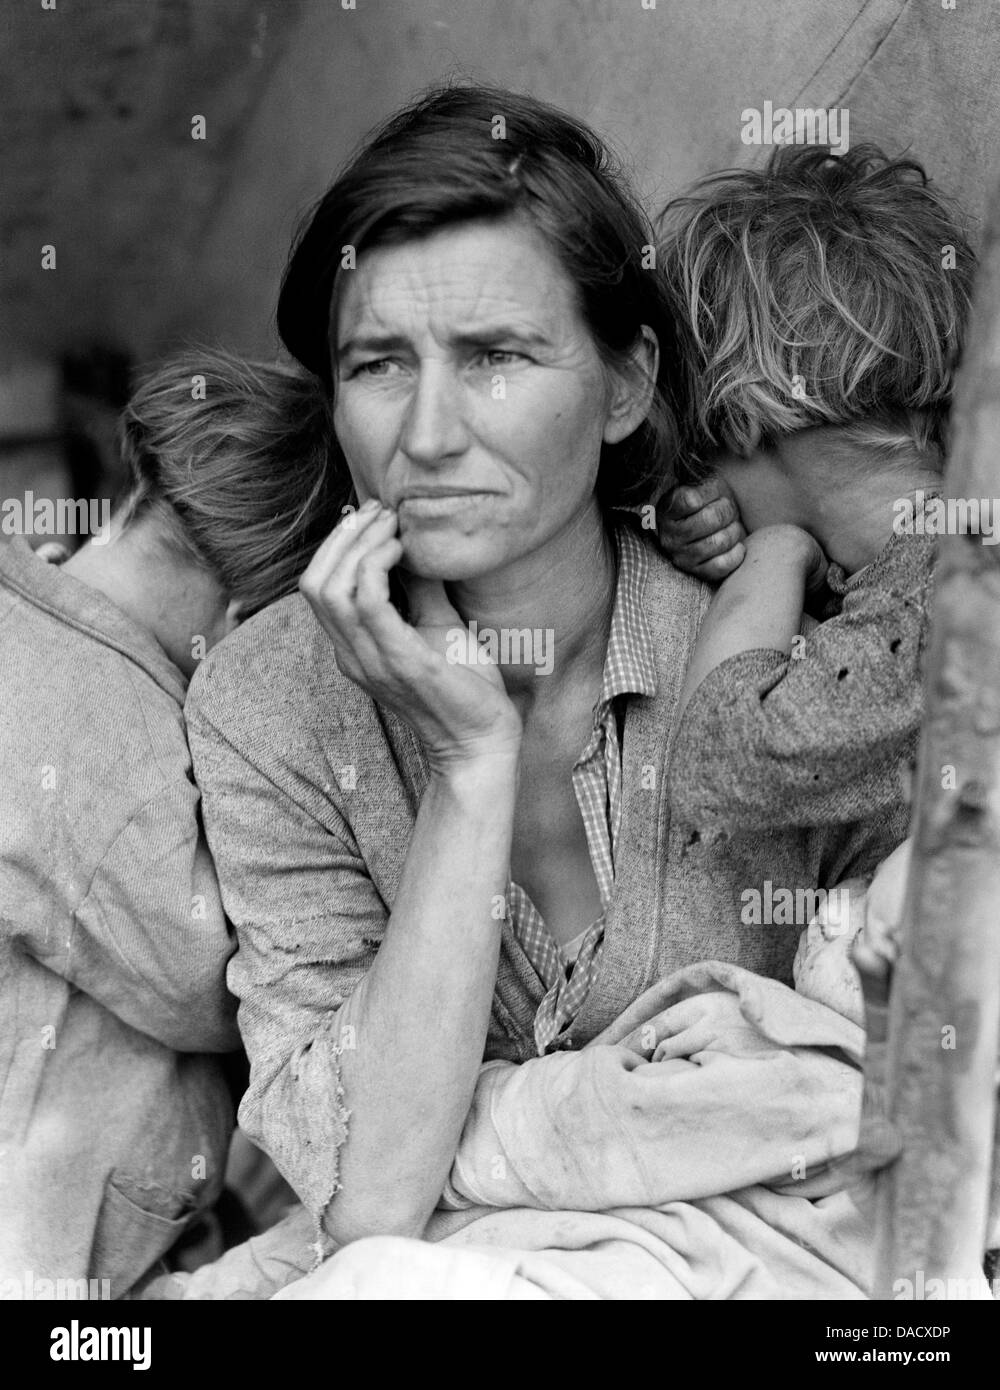 MIGRANT MOTHER 1936. US Photographer Dorothy Lange's image of Florence Owens Thompson. See Description below - Stock Image